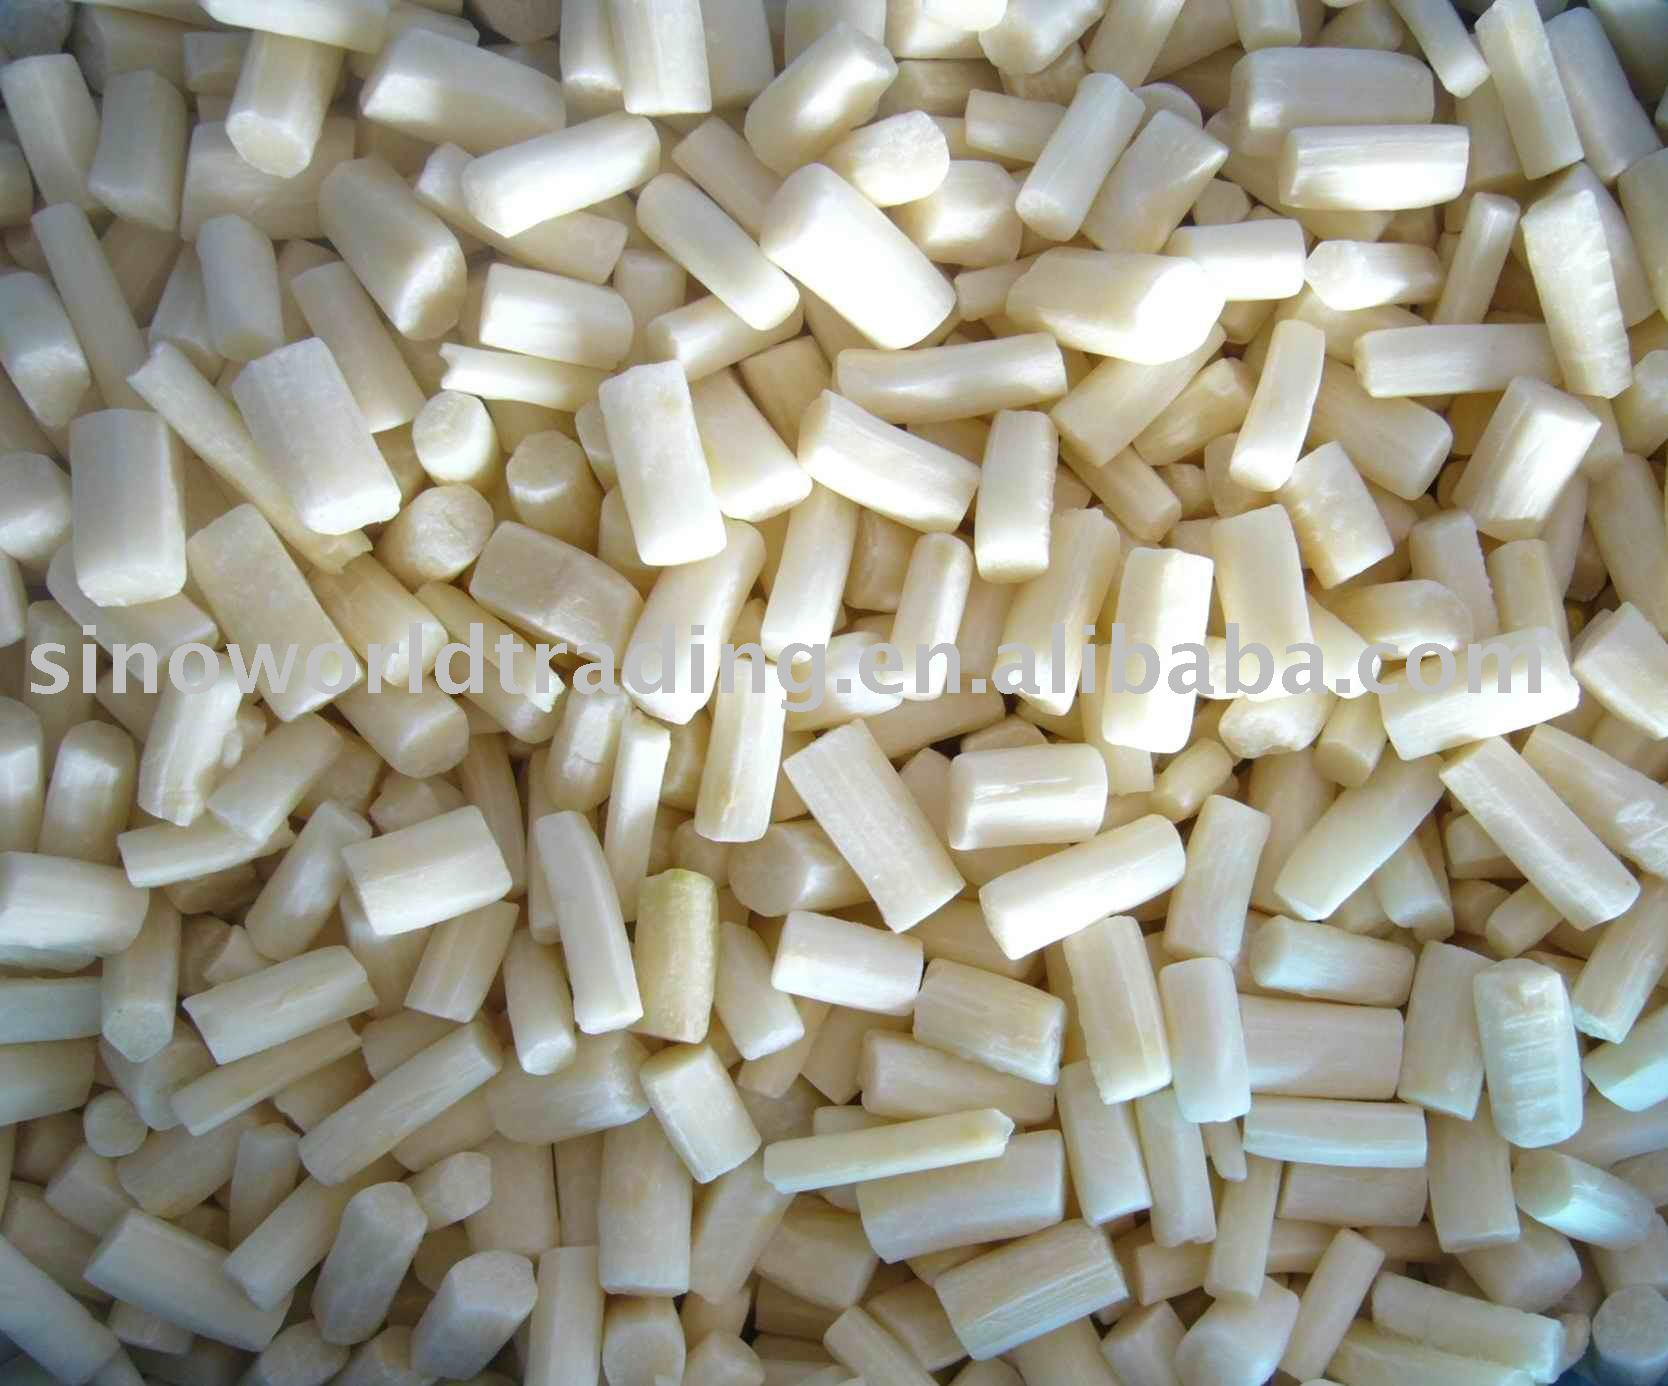 white asparagus sliced products,China white asparagus sliced supplier